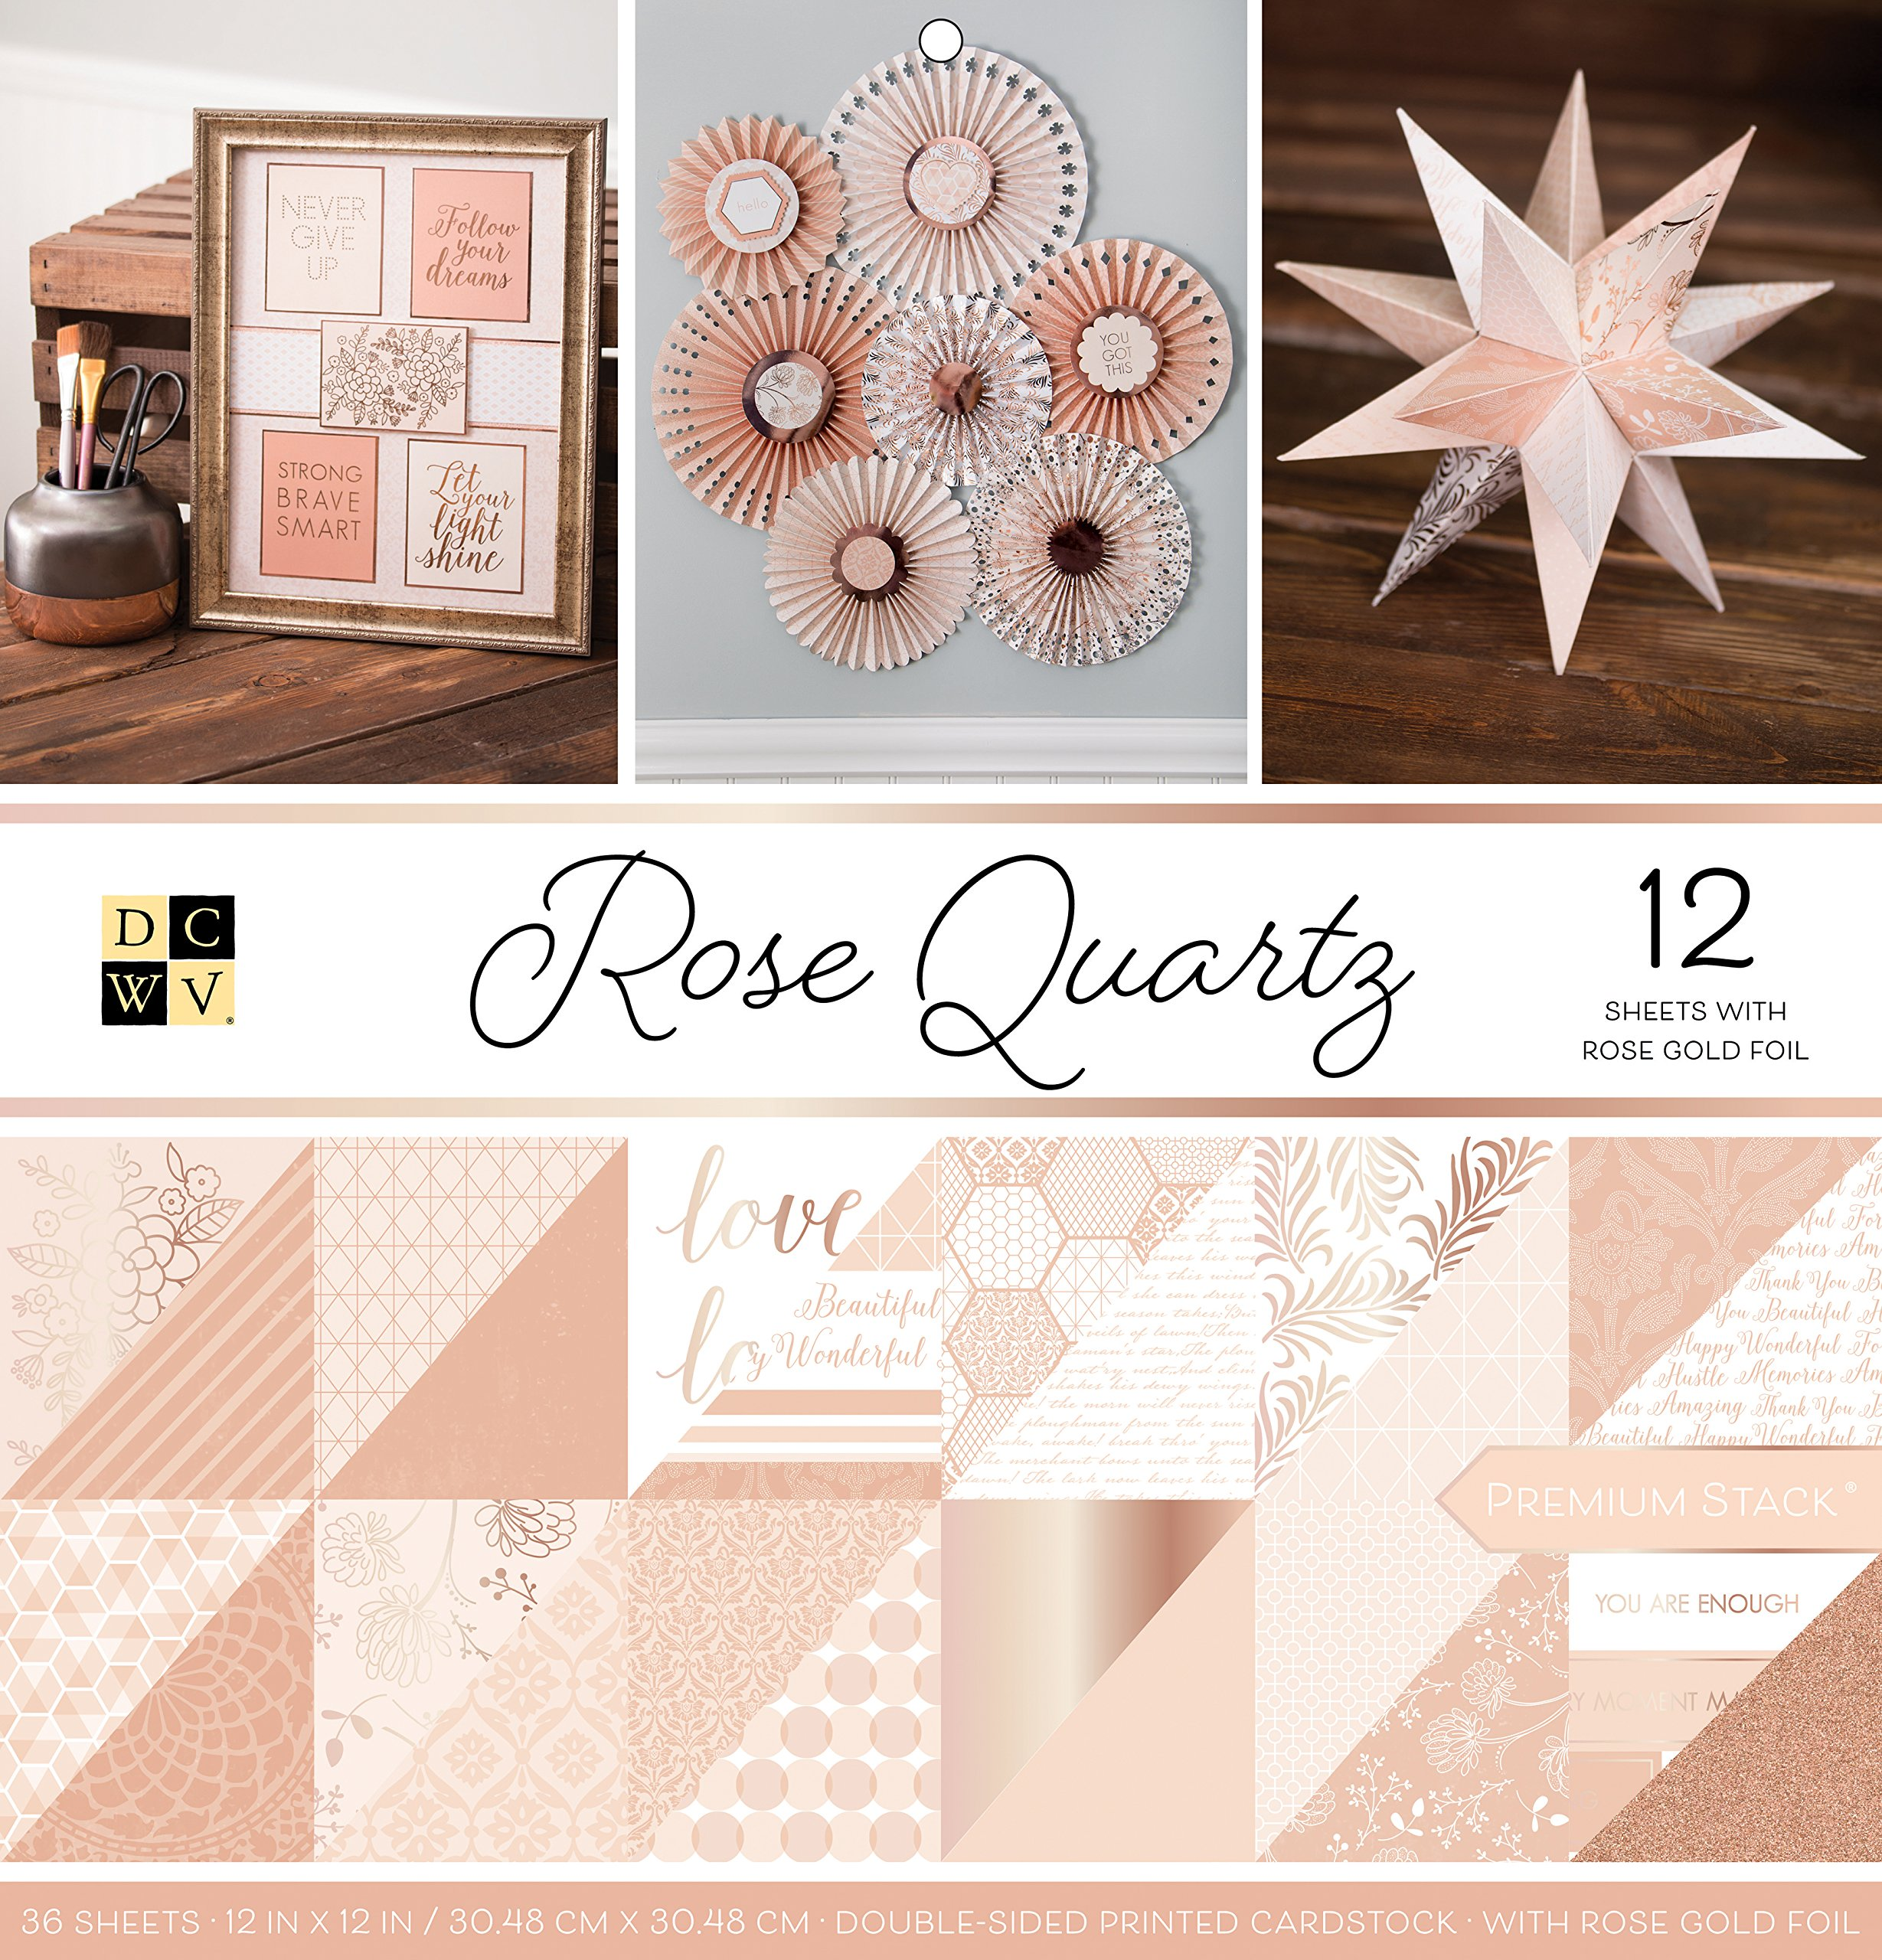 DCWVE DCWV Specialty Stack-6 x 6-Single-Sided-Solid Rose Golds-Foil and Glitter-18 Seat PS-006-00132 6 x 6